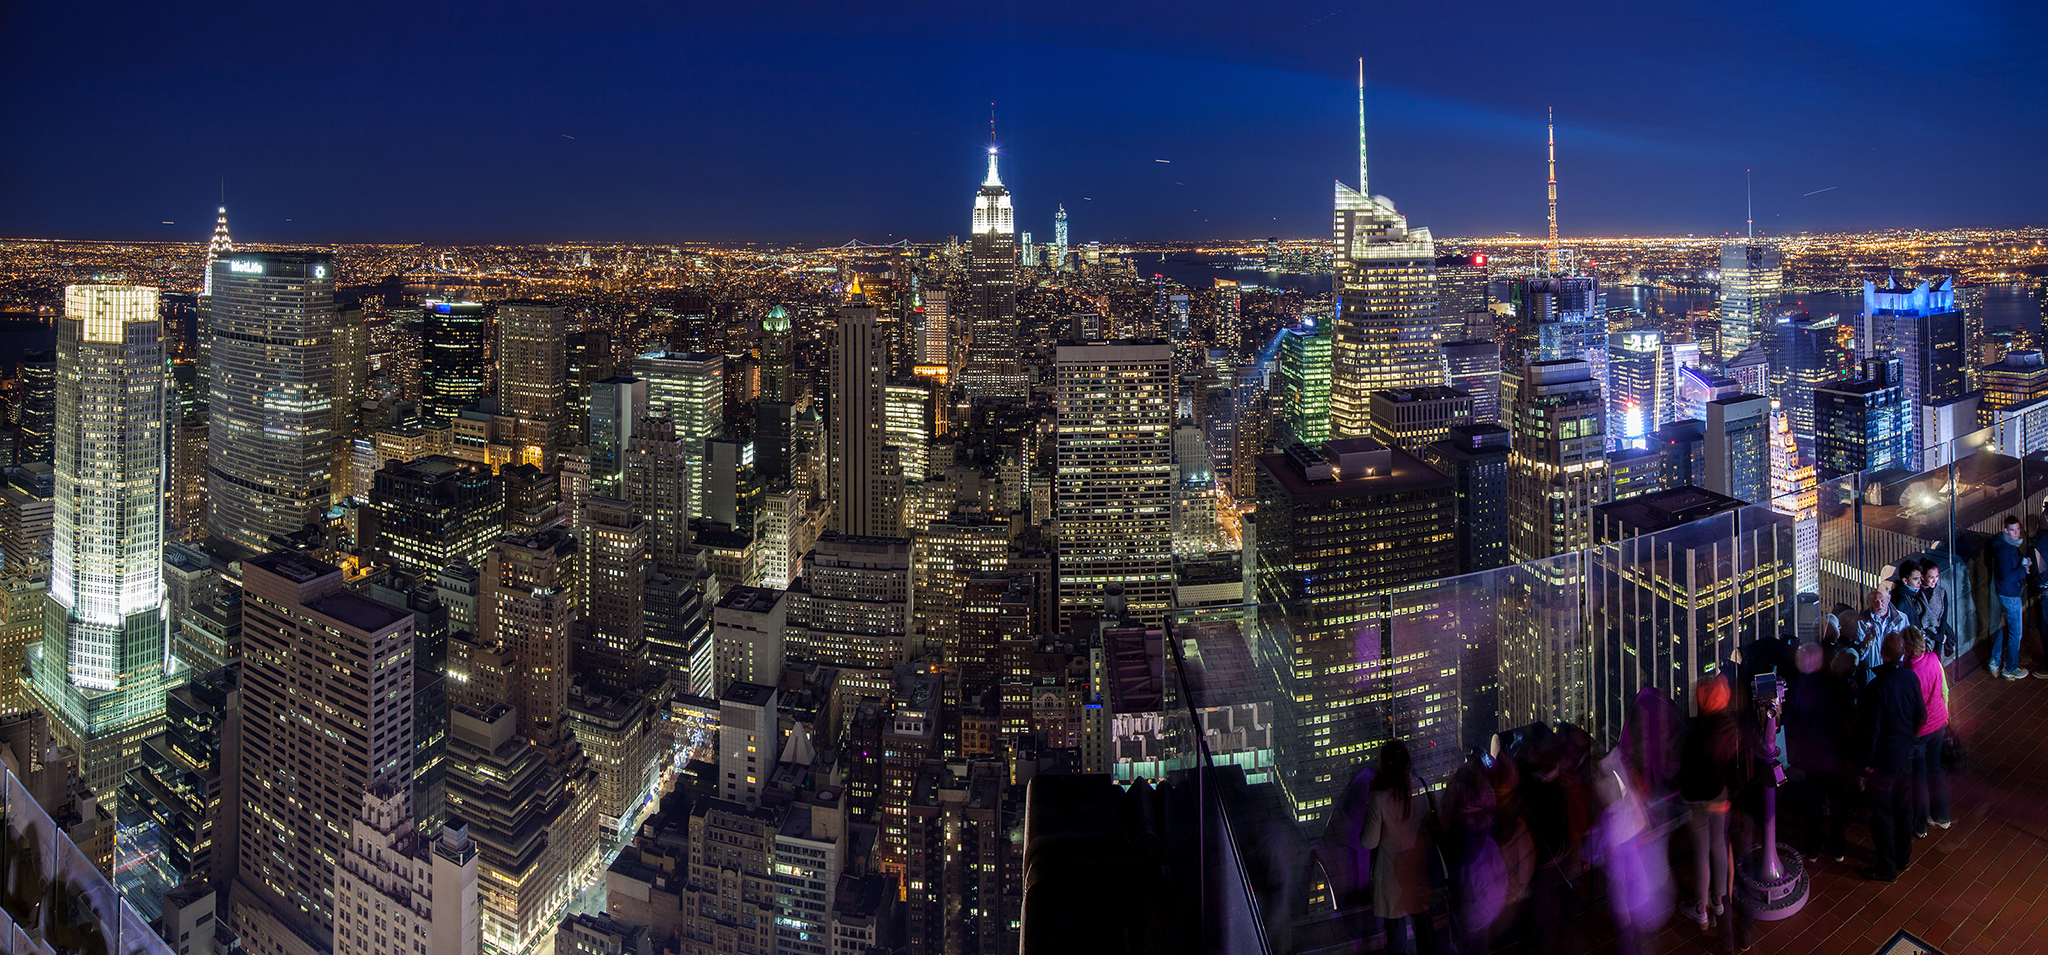 Manhattan after sunset as seen from the Top of the Rock